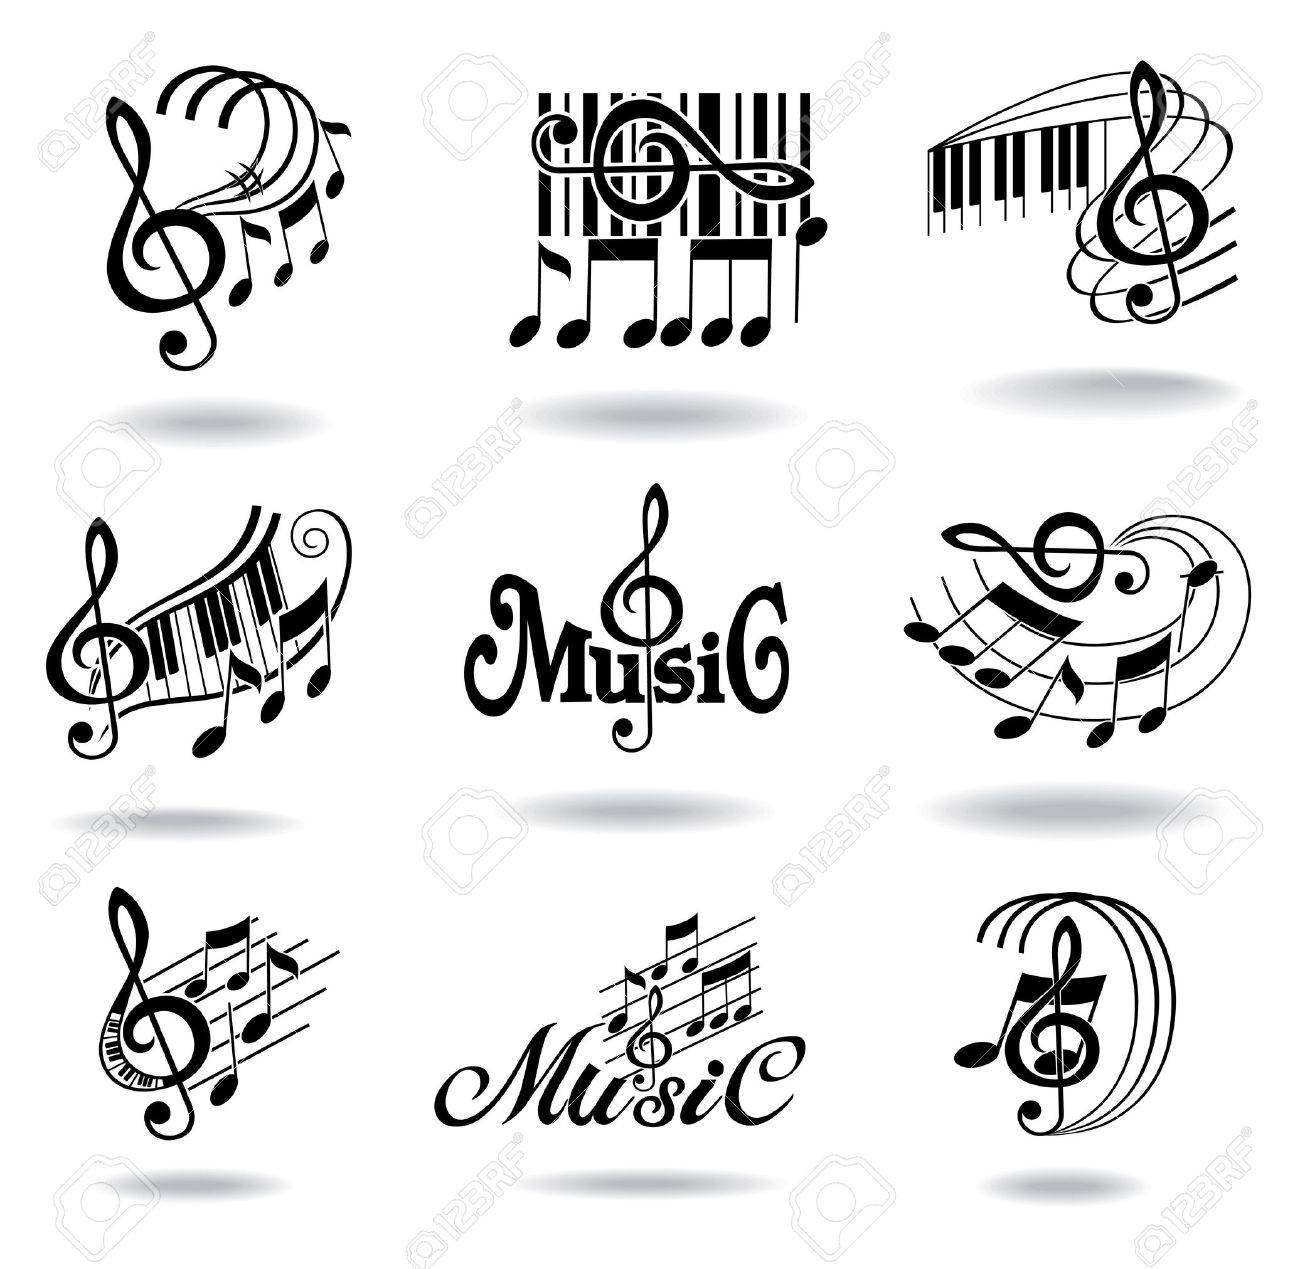 music notes images u0026 stock pictures royalty free music notes